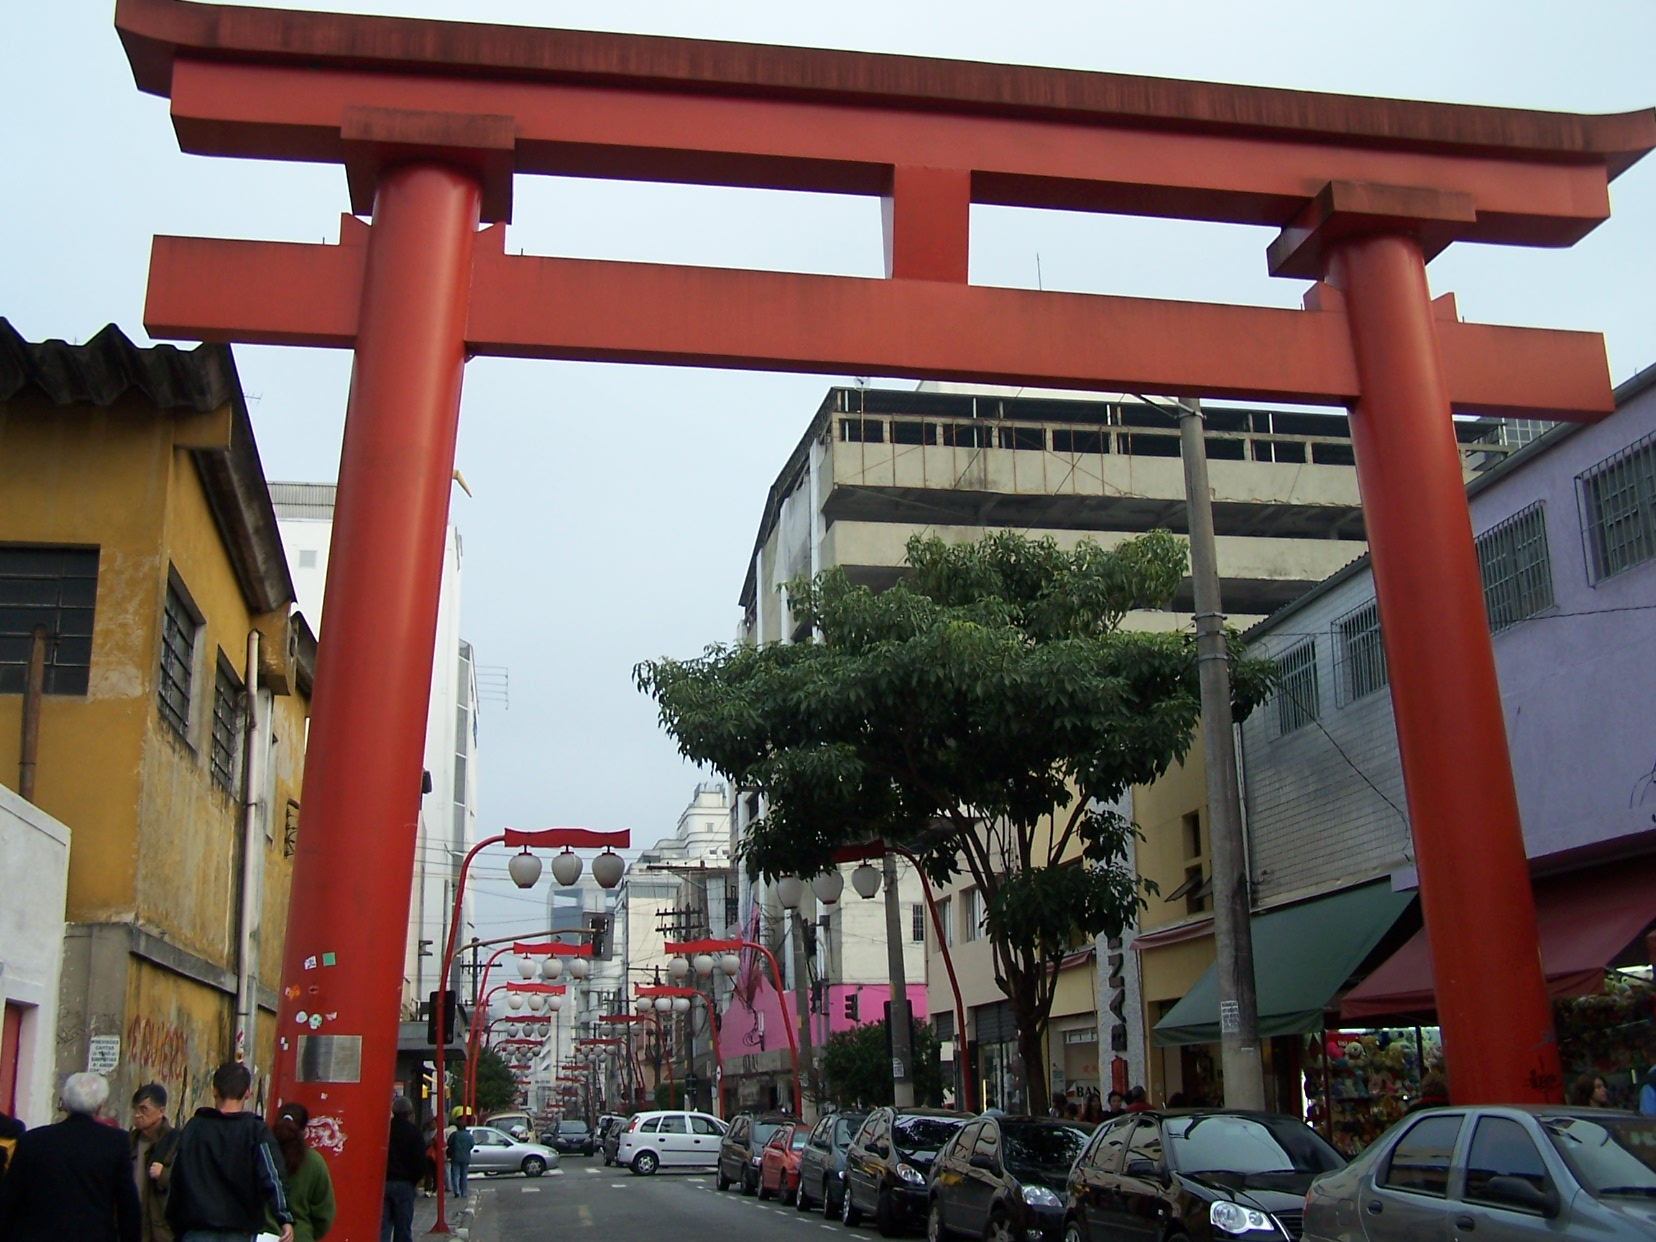 (Quelle: Wikimedia Commons https://commons.wikimedia.org/wiki/File:Torii_Liberdade.jpg)